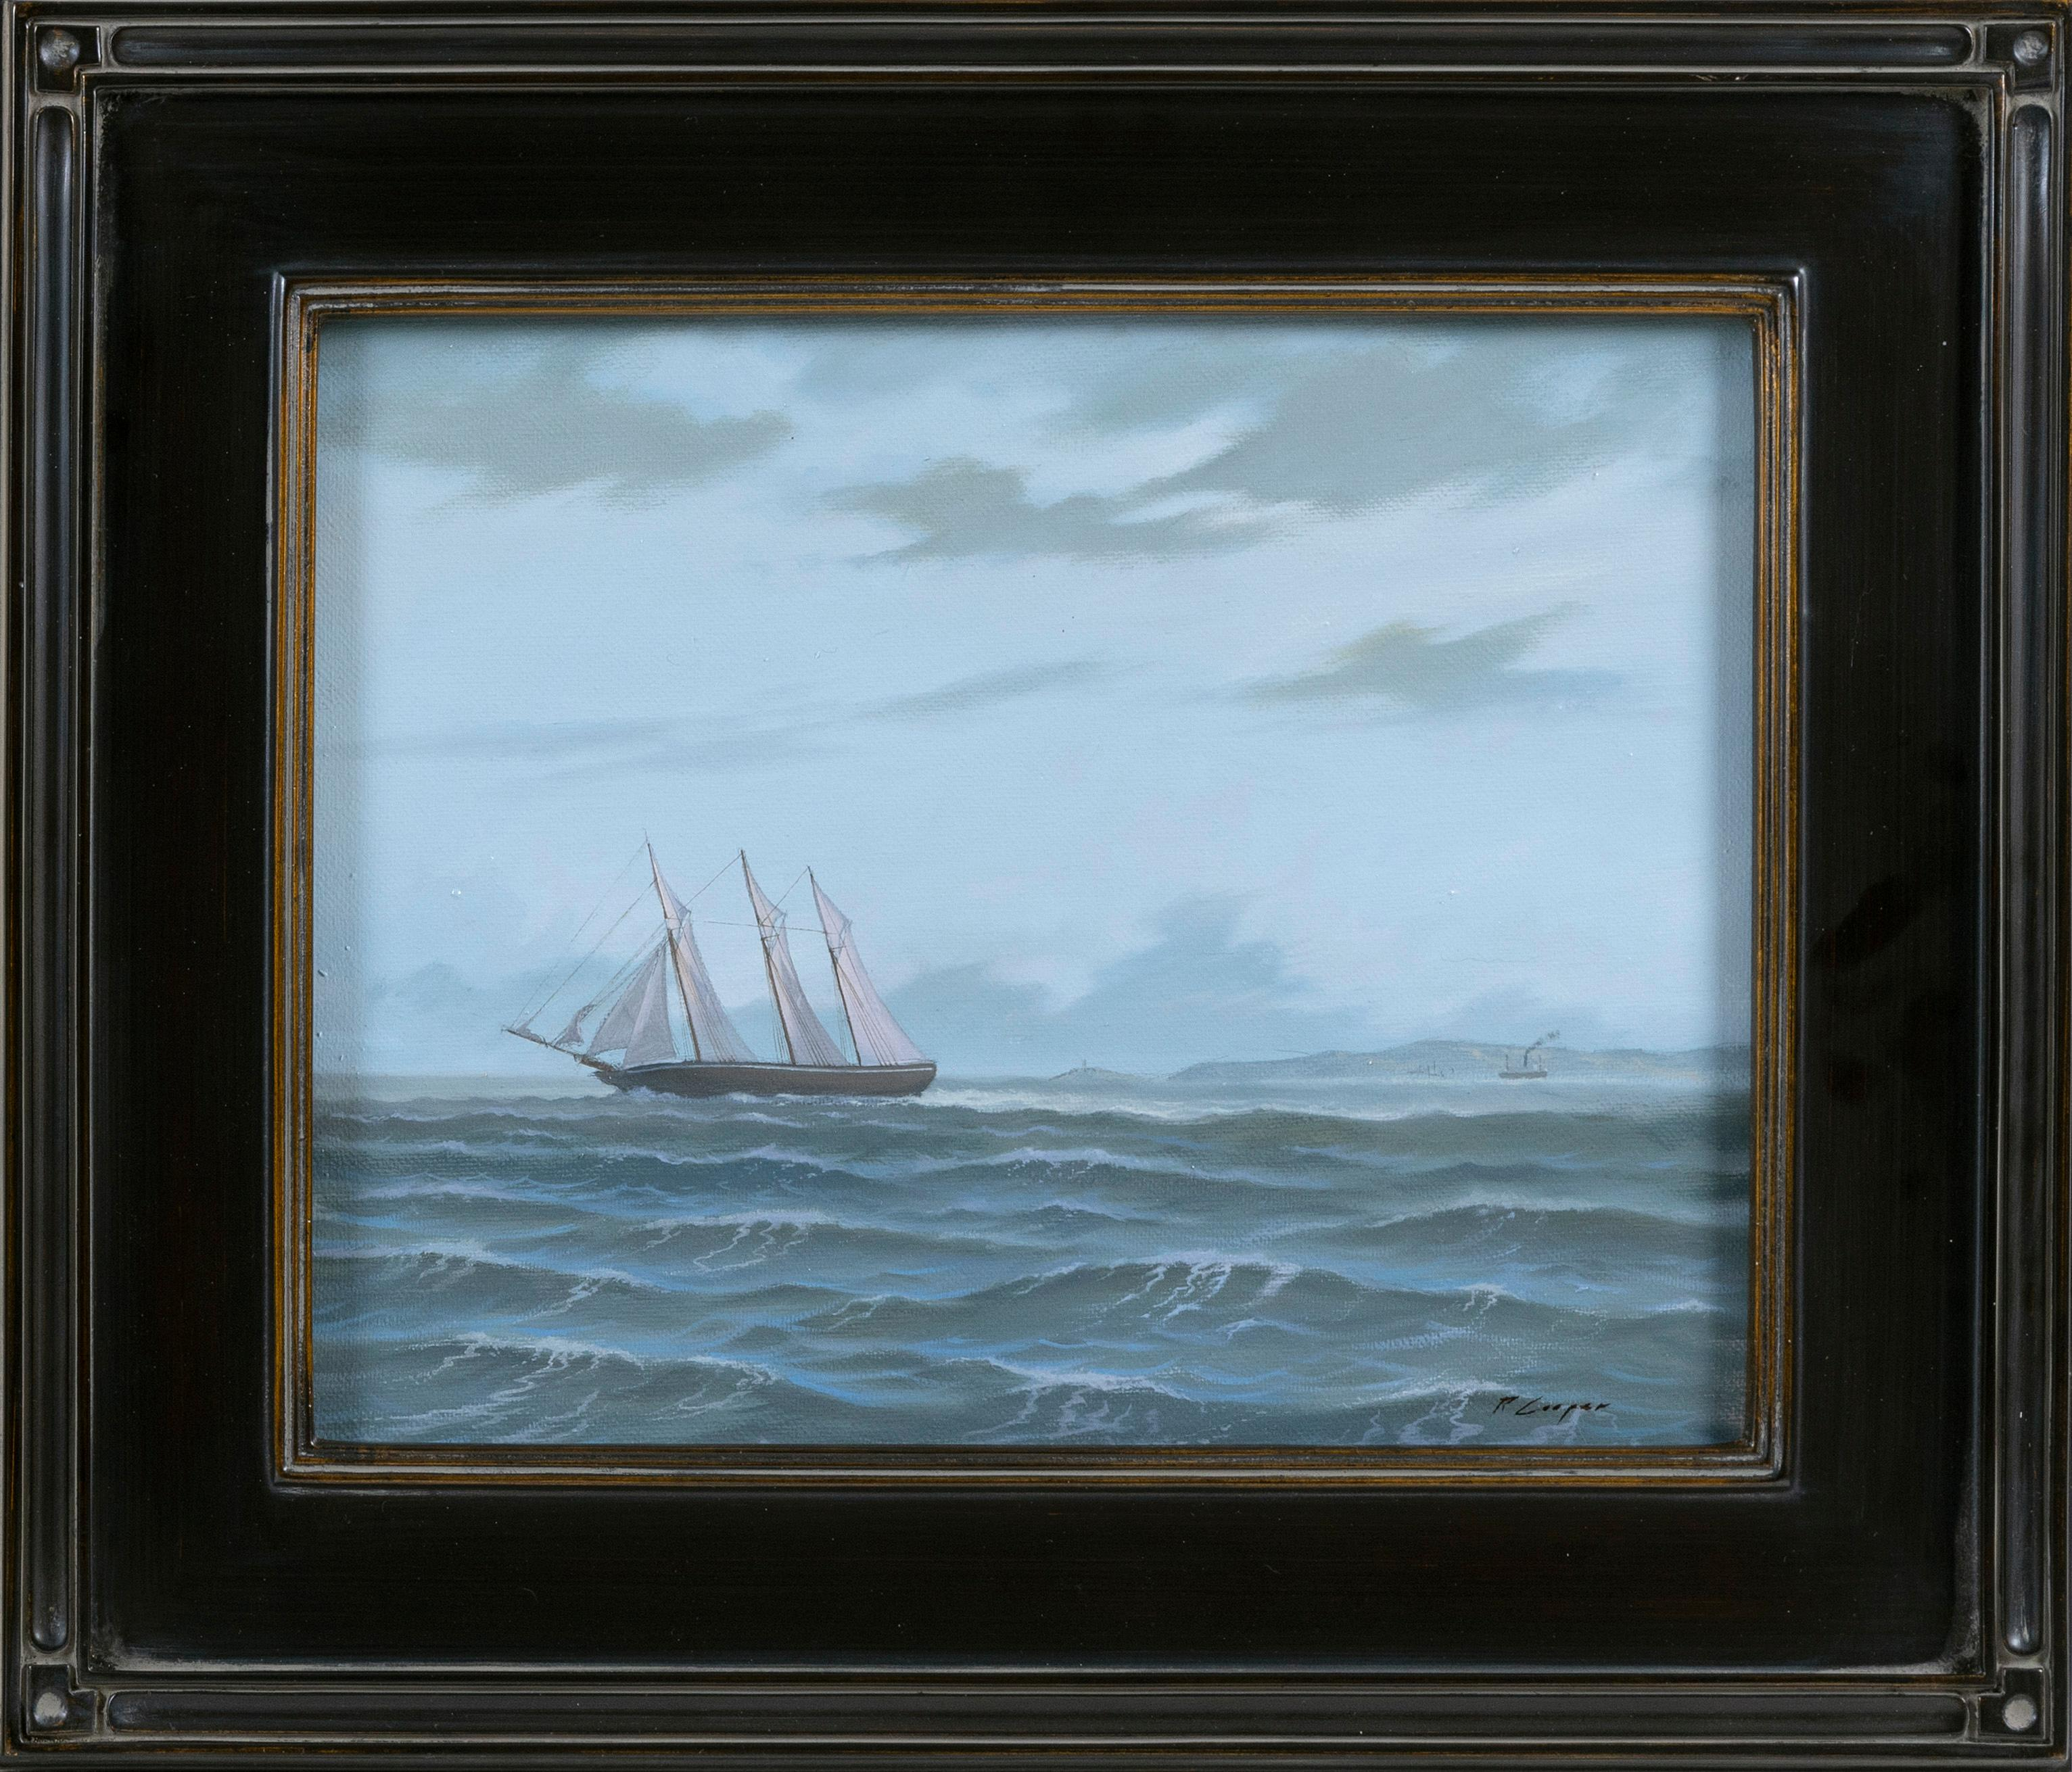 """RYAN COOPER, Massachusetts, Contemporary, """"Outward Bound""""., Oil on canvas, 11"""" x 14"""". Framed 16.5"""" x 19.5""""."""